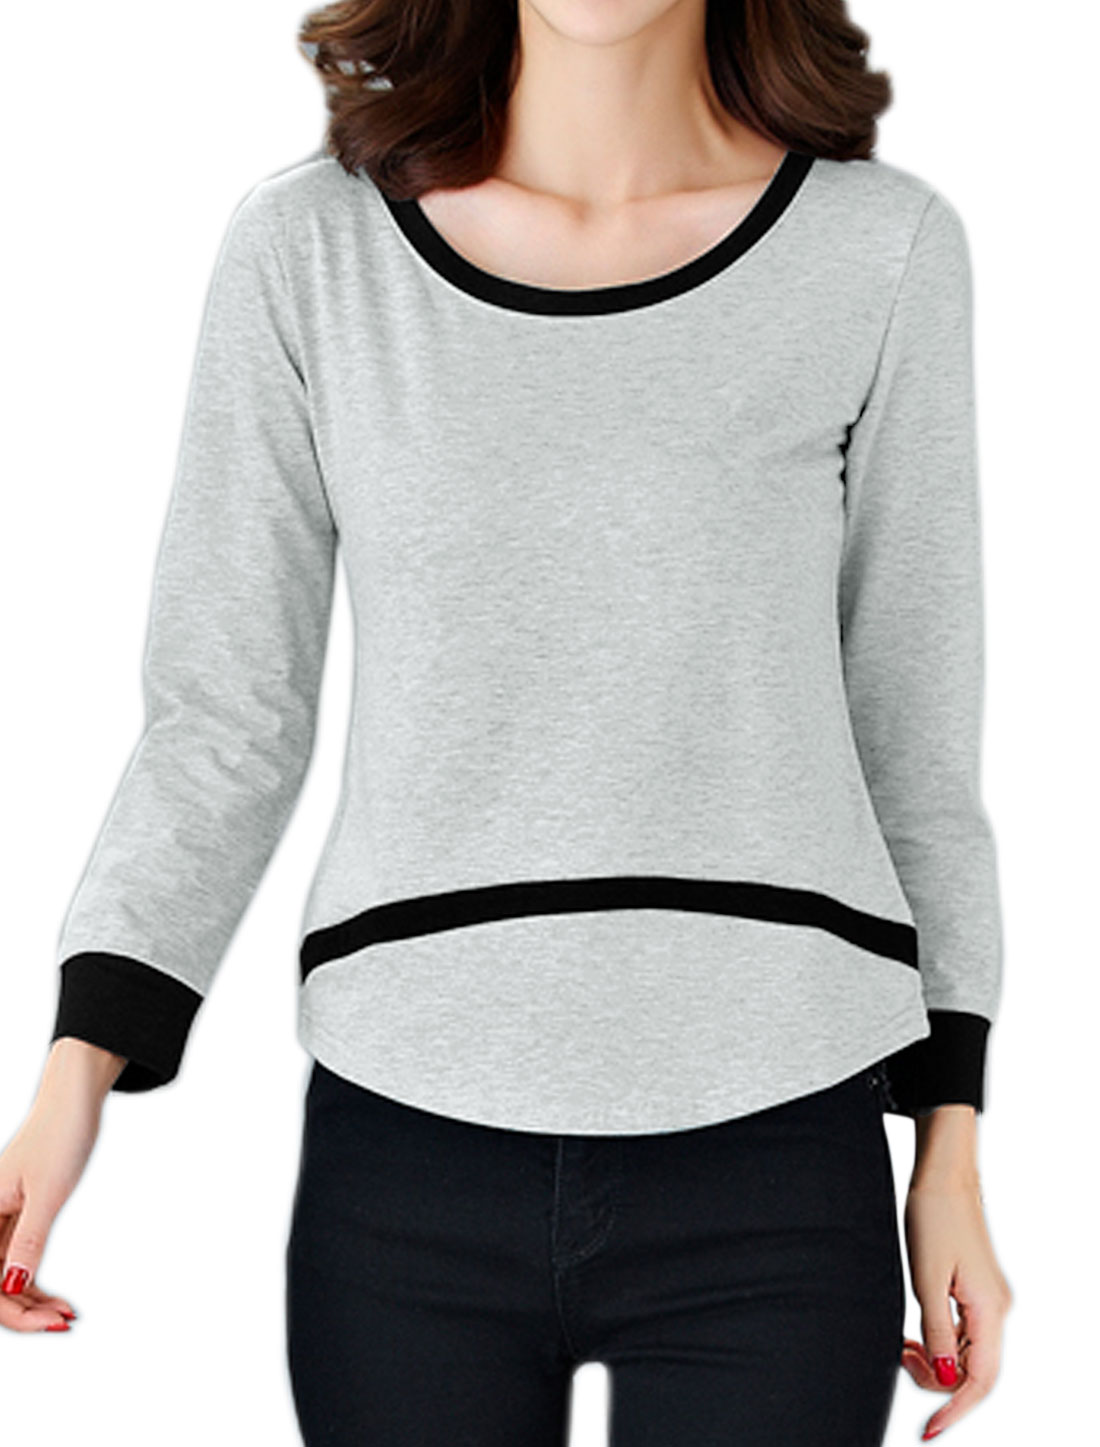 Women Long Sleeve Contrast Color Curved Hem T- Shirt Gray M